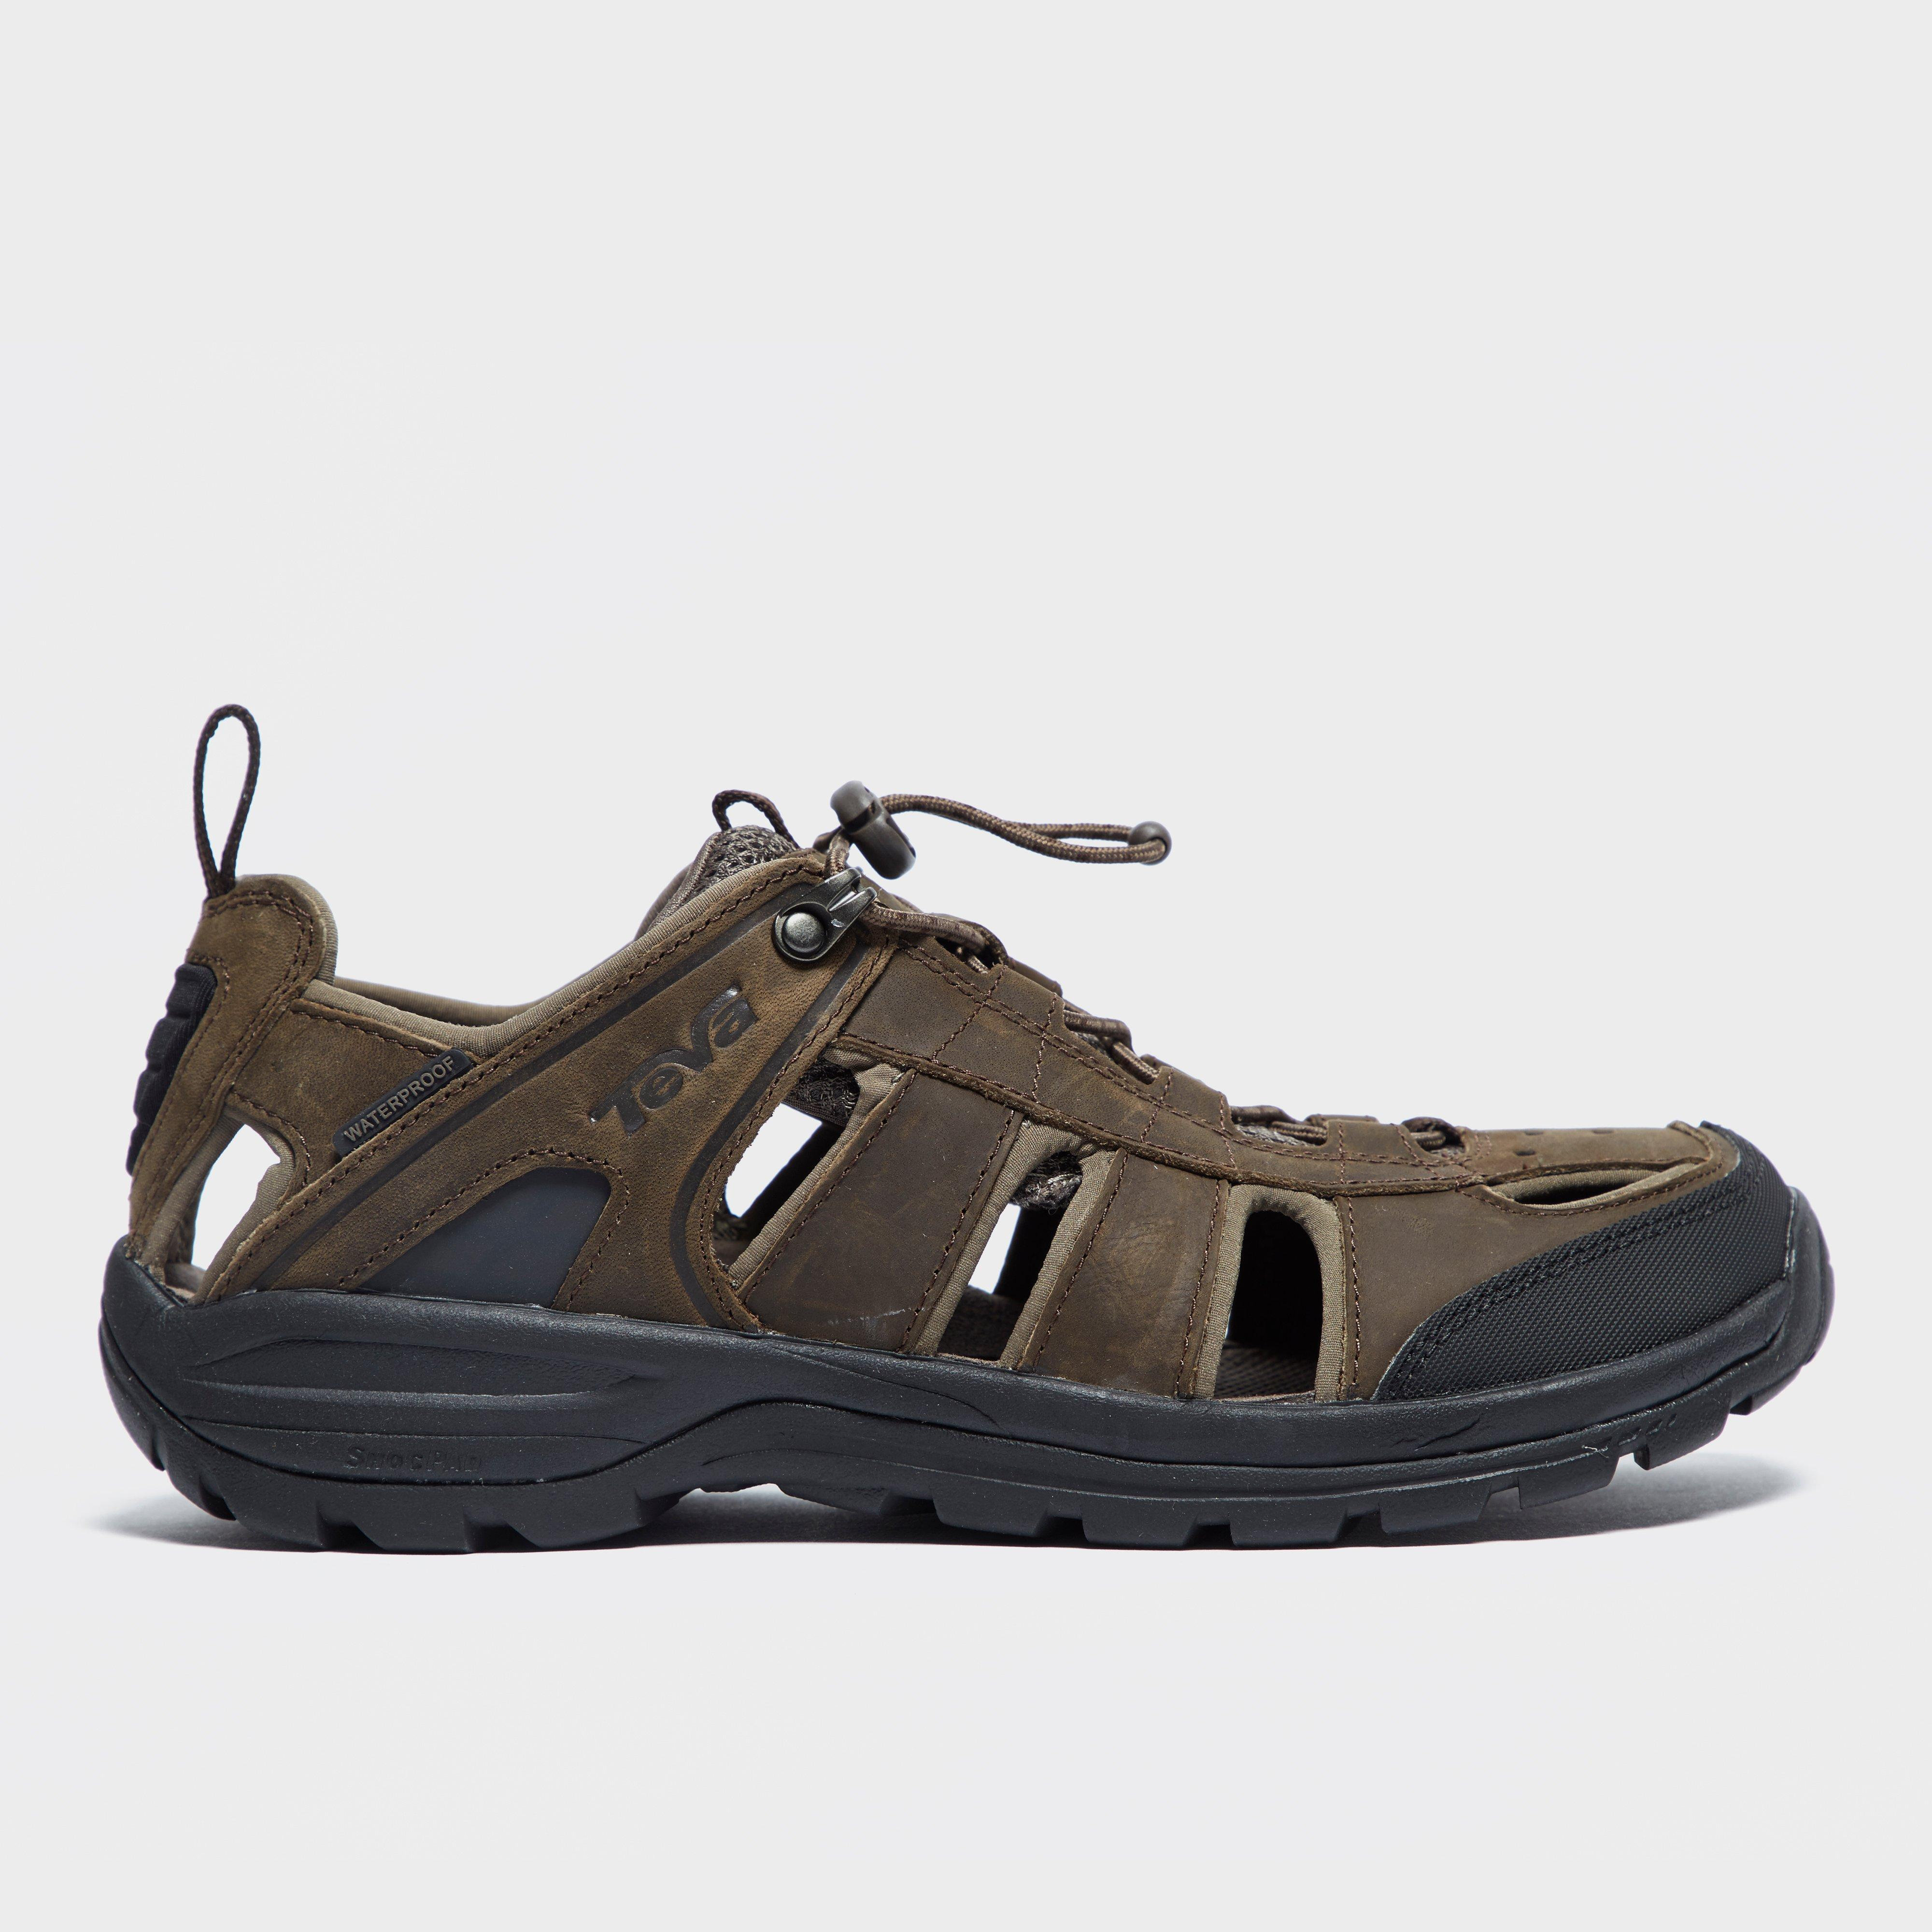 Teva Men S Kimtah Leather Sandal Brown Bear Grylls Uk